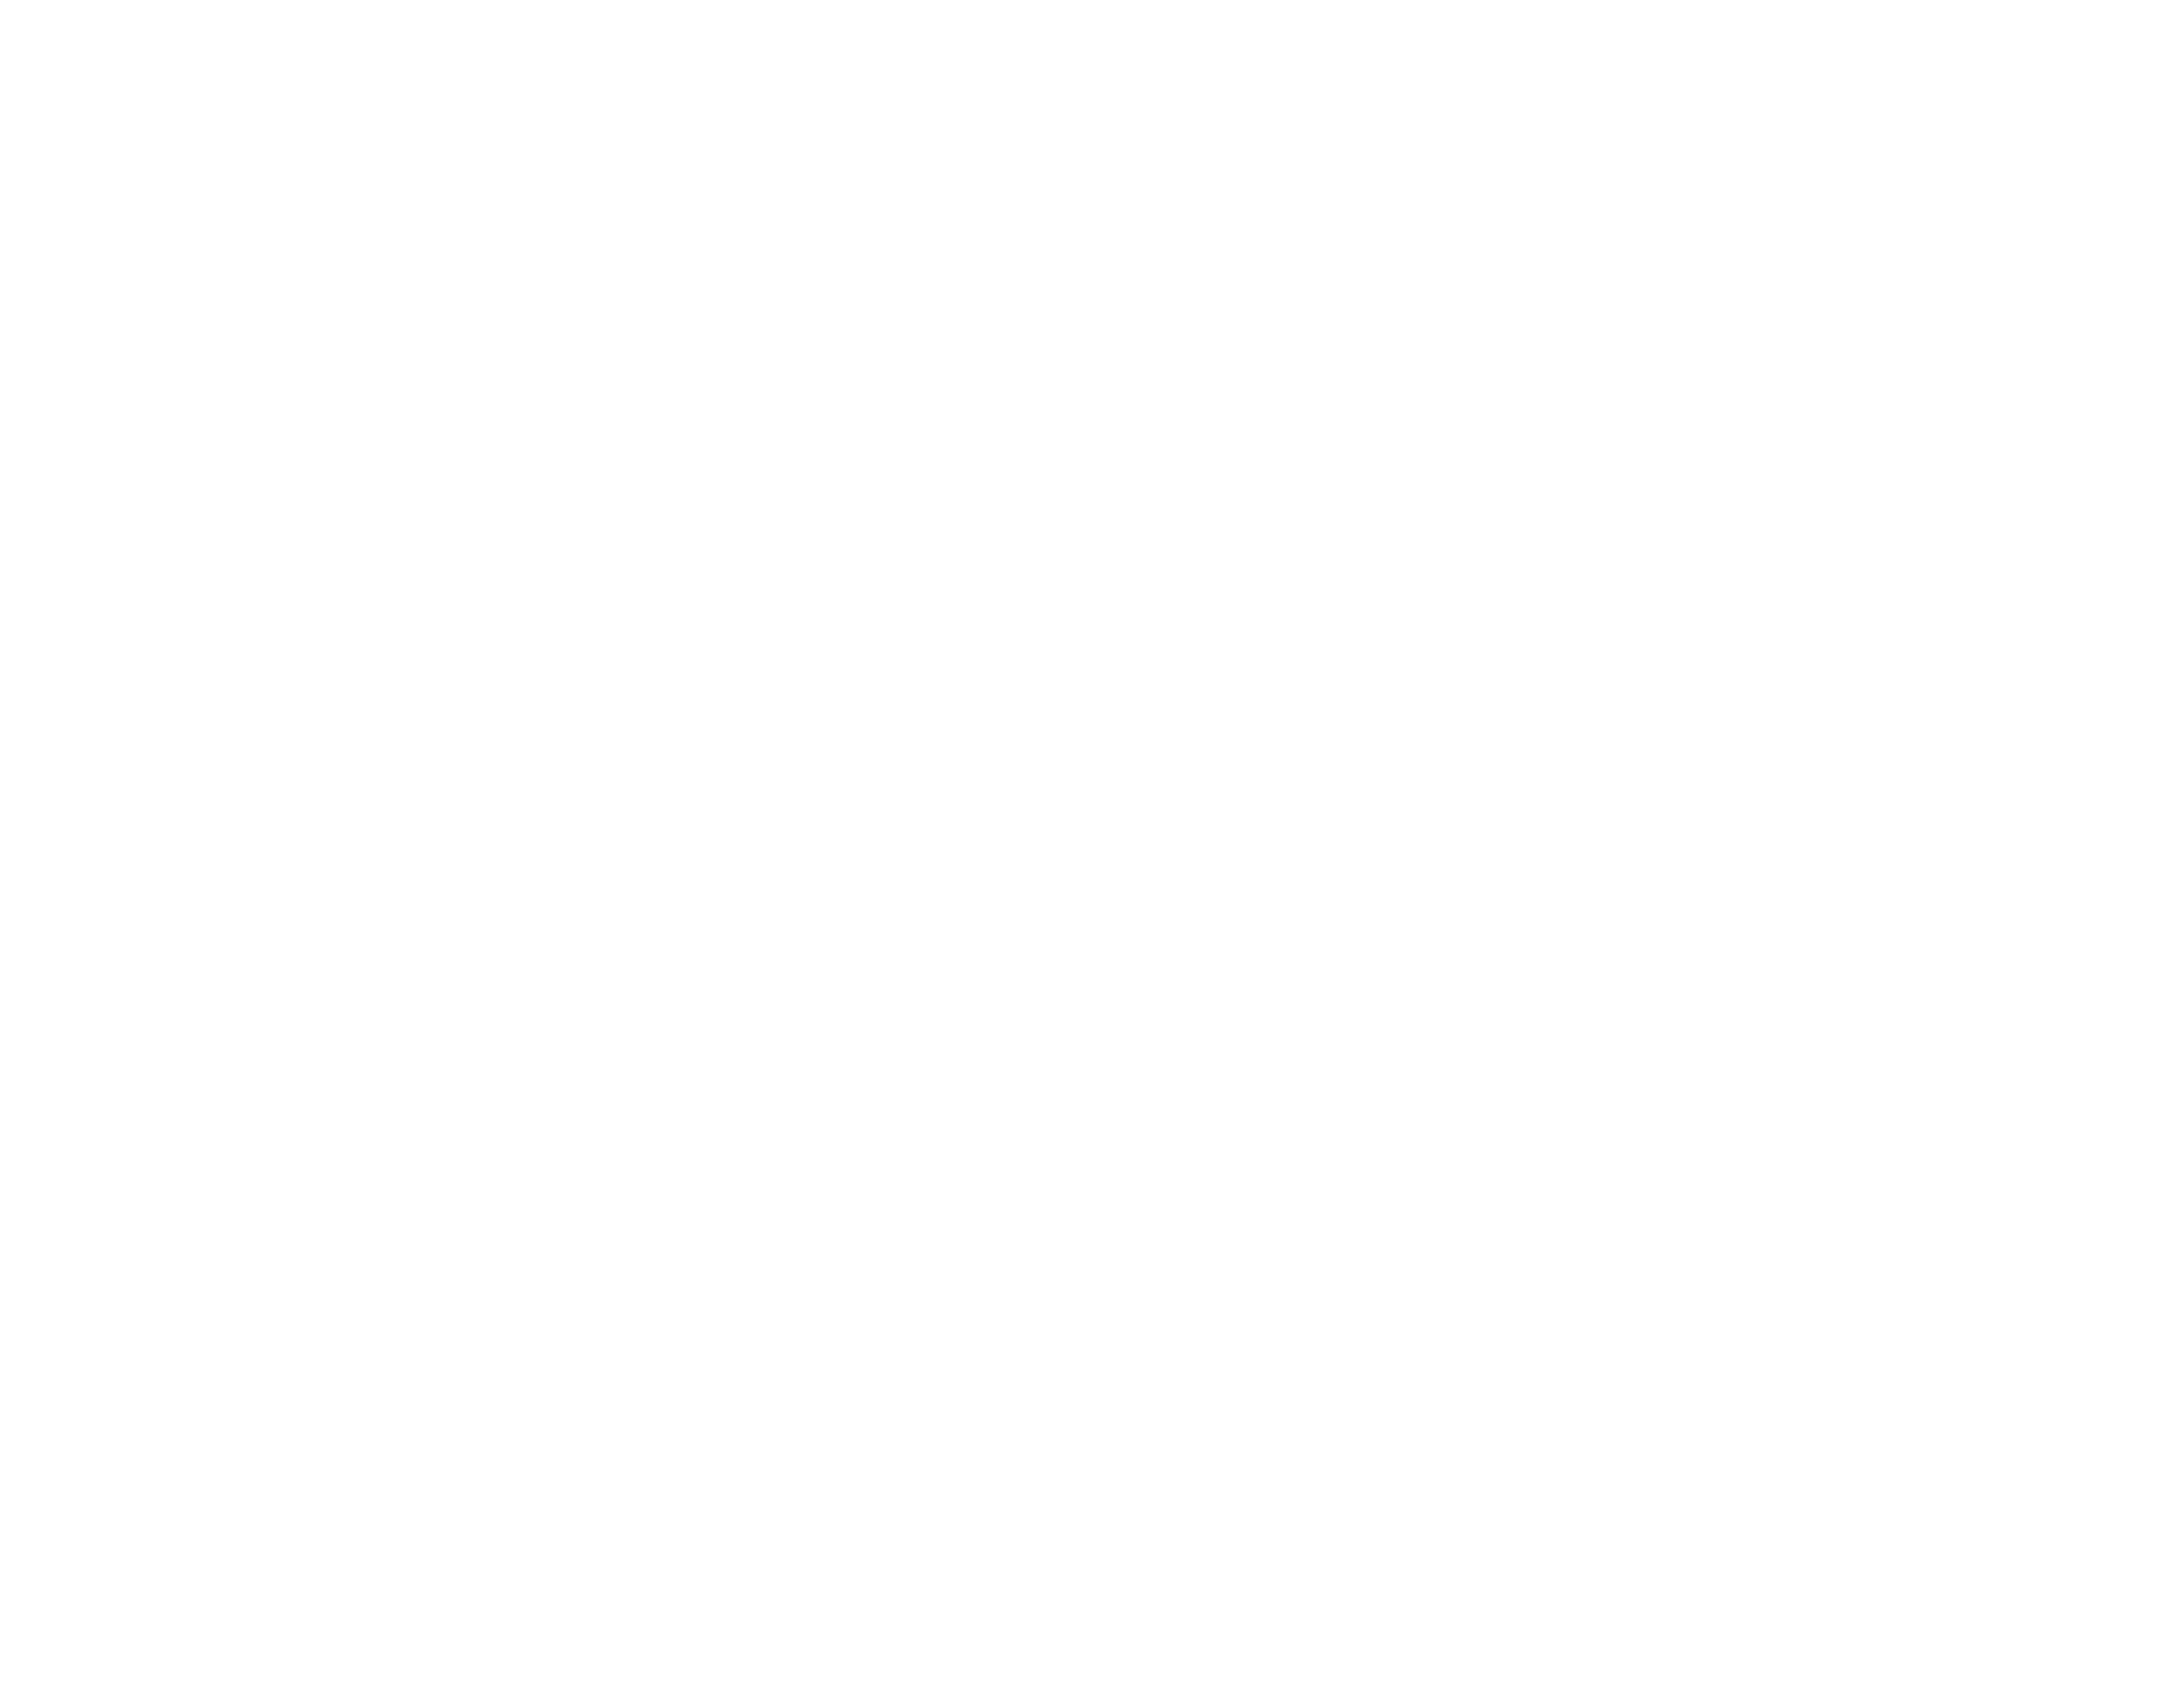 http://chicago.carpediem.cd/events/?dt=10.02.2018